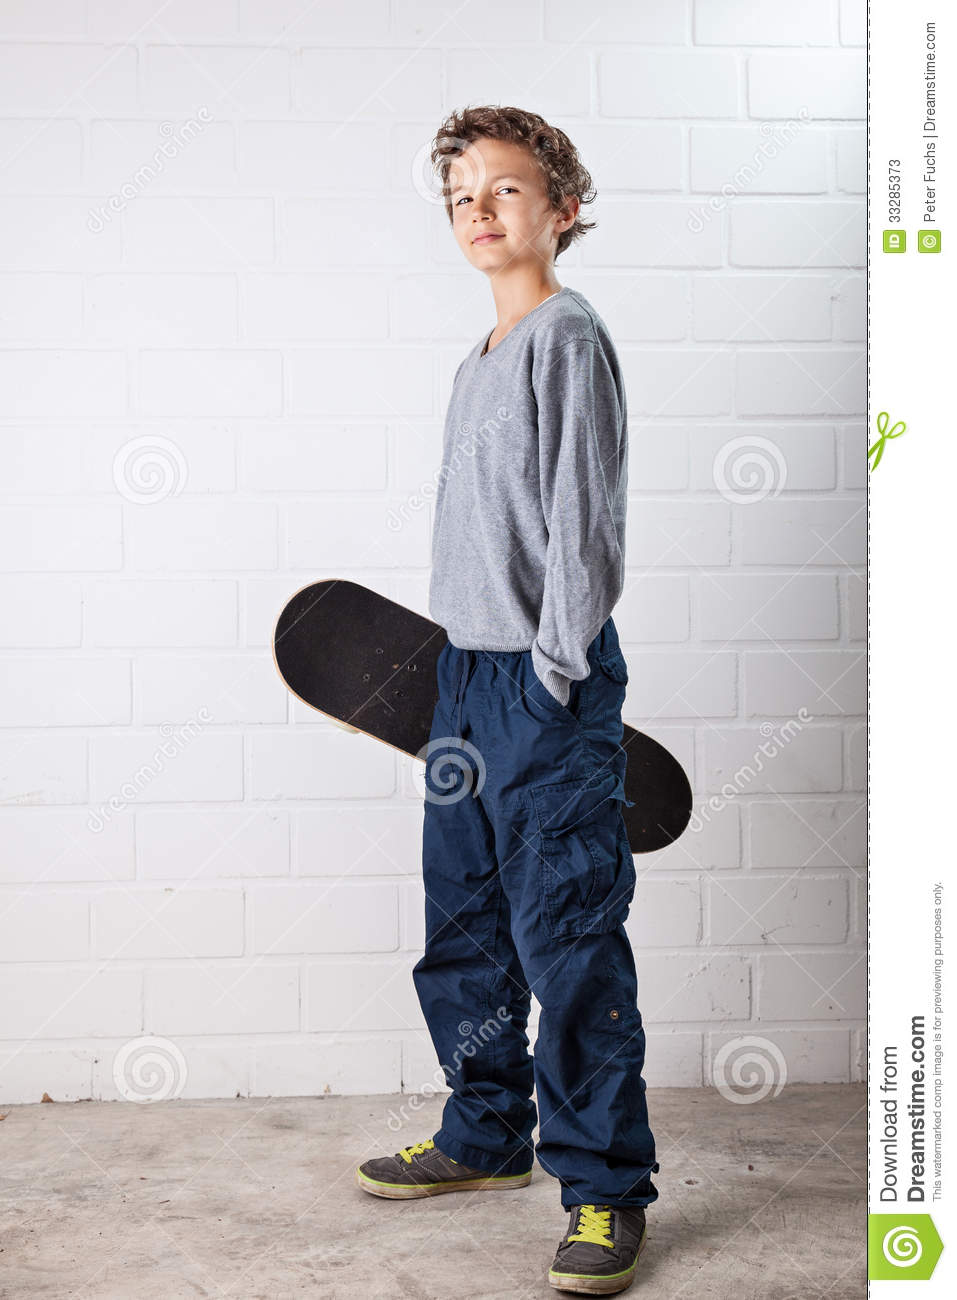 Cool boy and his skateboard stock photos image 33285373 - Cool boys photo ...